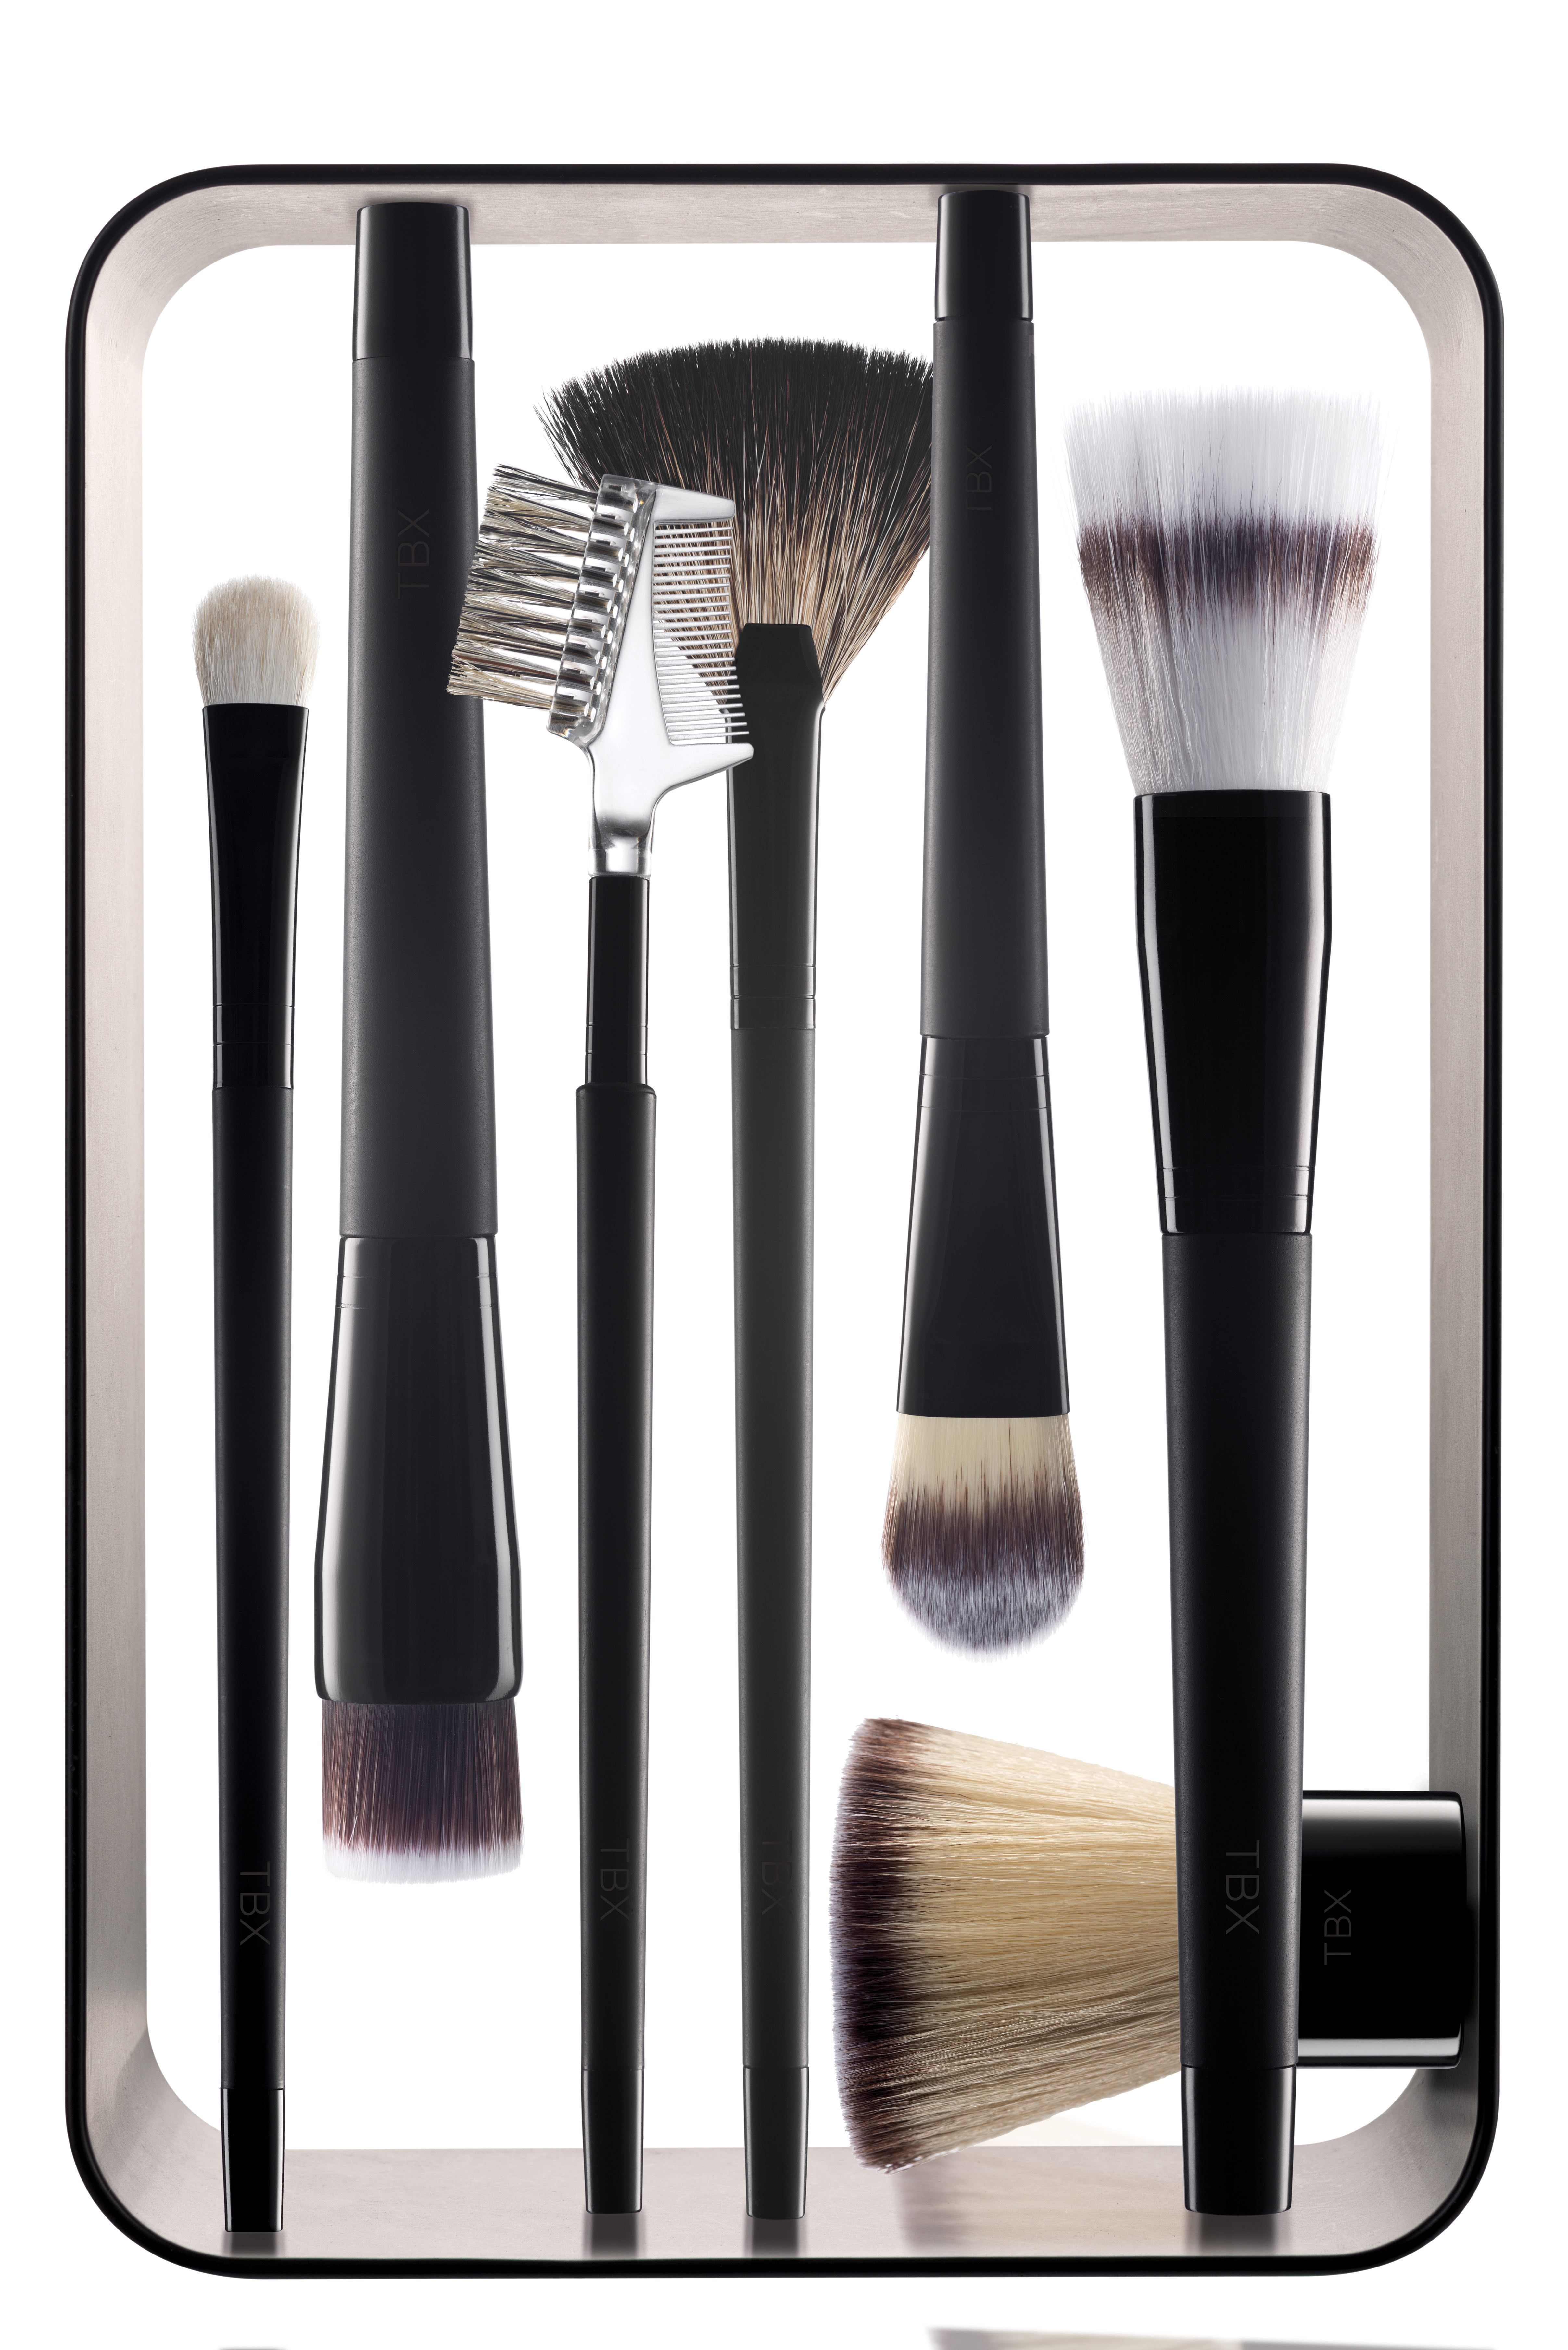 This Is Why You Need A Makeup Brush CollectionIf you want